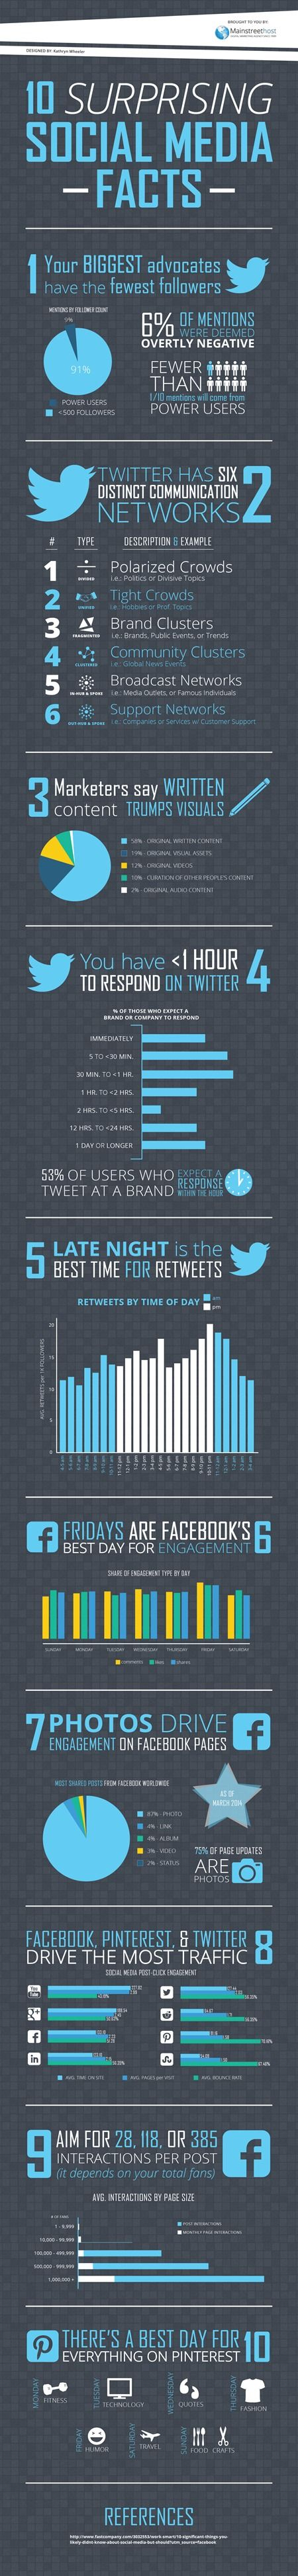 Surprising social media facts Infographic